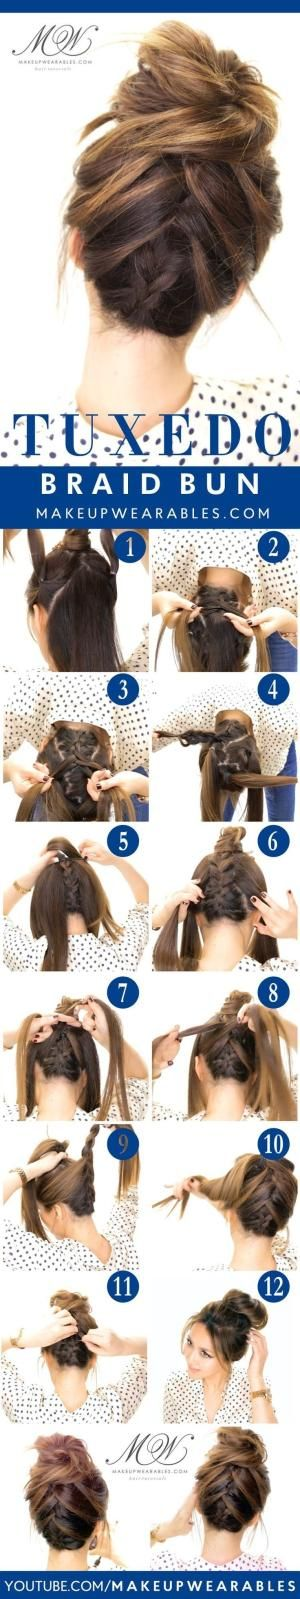 Tuxedo Braid Bun Tutorial 5 Messy Updos For Long Hair Check It